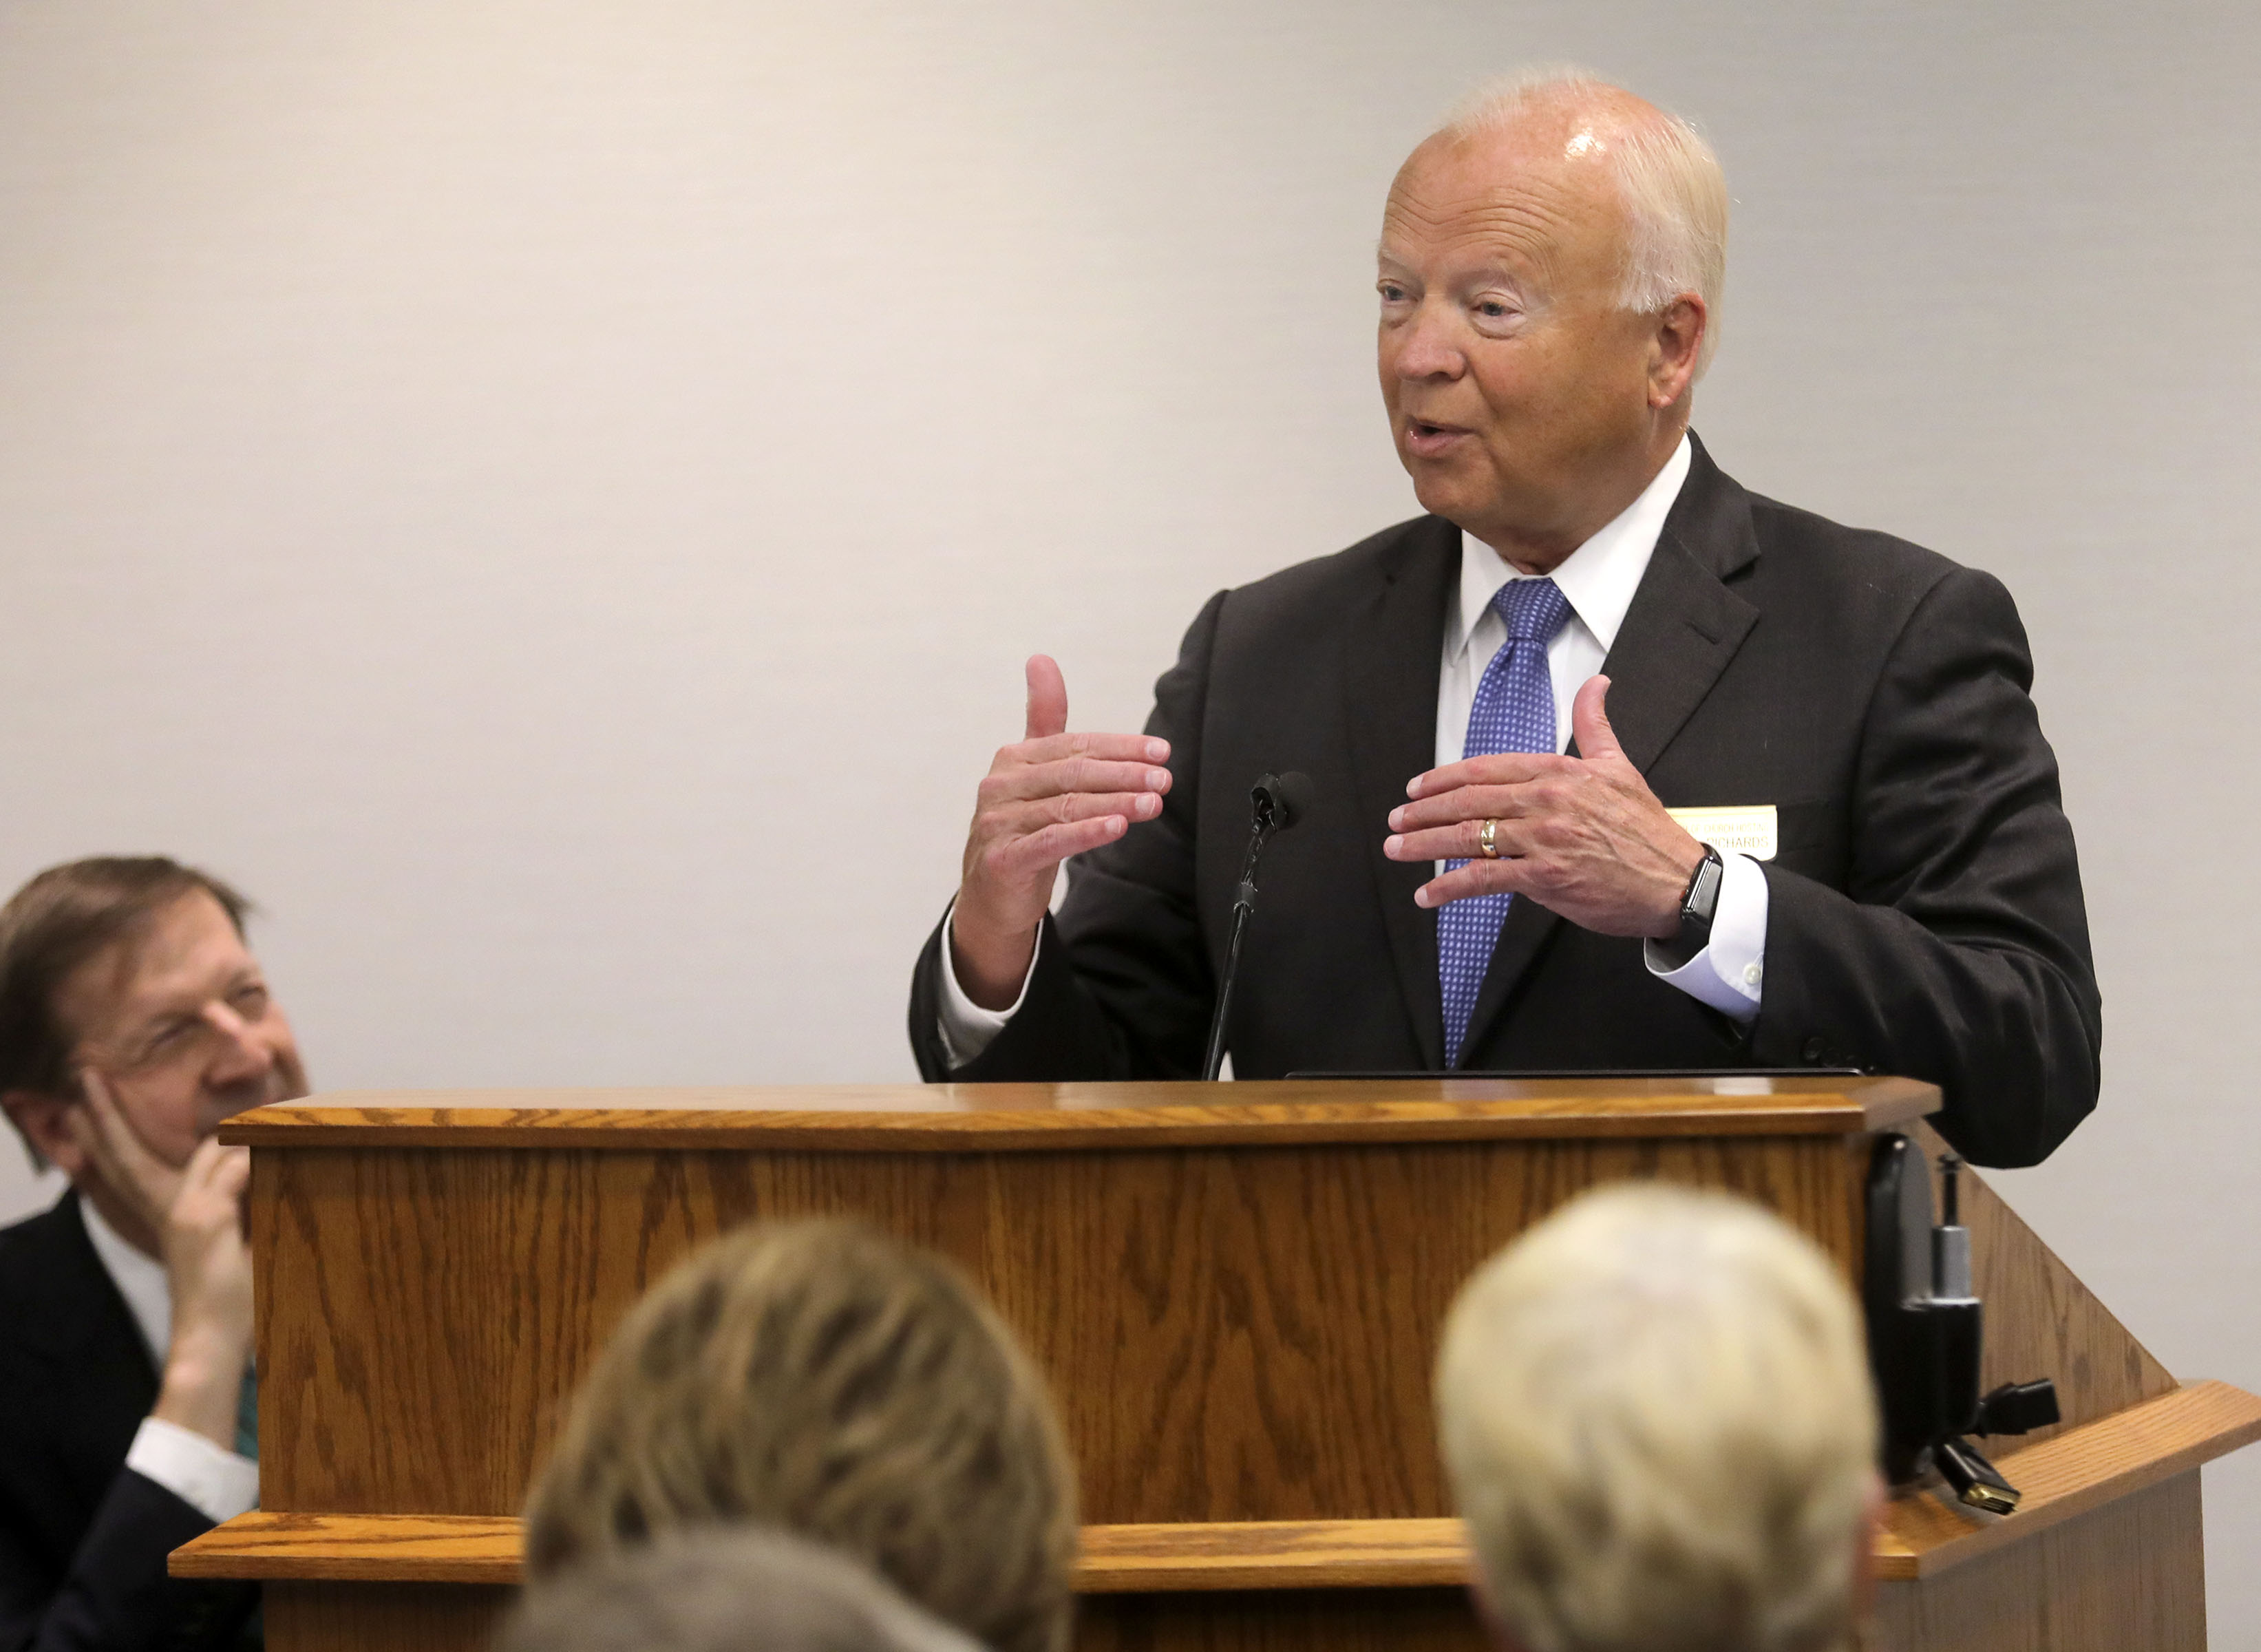 Elder Kent F. Richards, emeritus General Authority Seventy of The Church of Jesus Christ of Latter-day Saints, speaks during the FamilySearch 125th anniversary celebration at the Family History Library in Salt Lake City on Wednesday, Nov. 13, 2019.